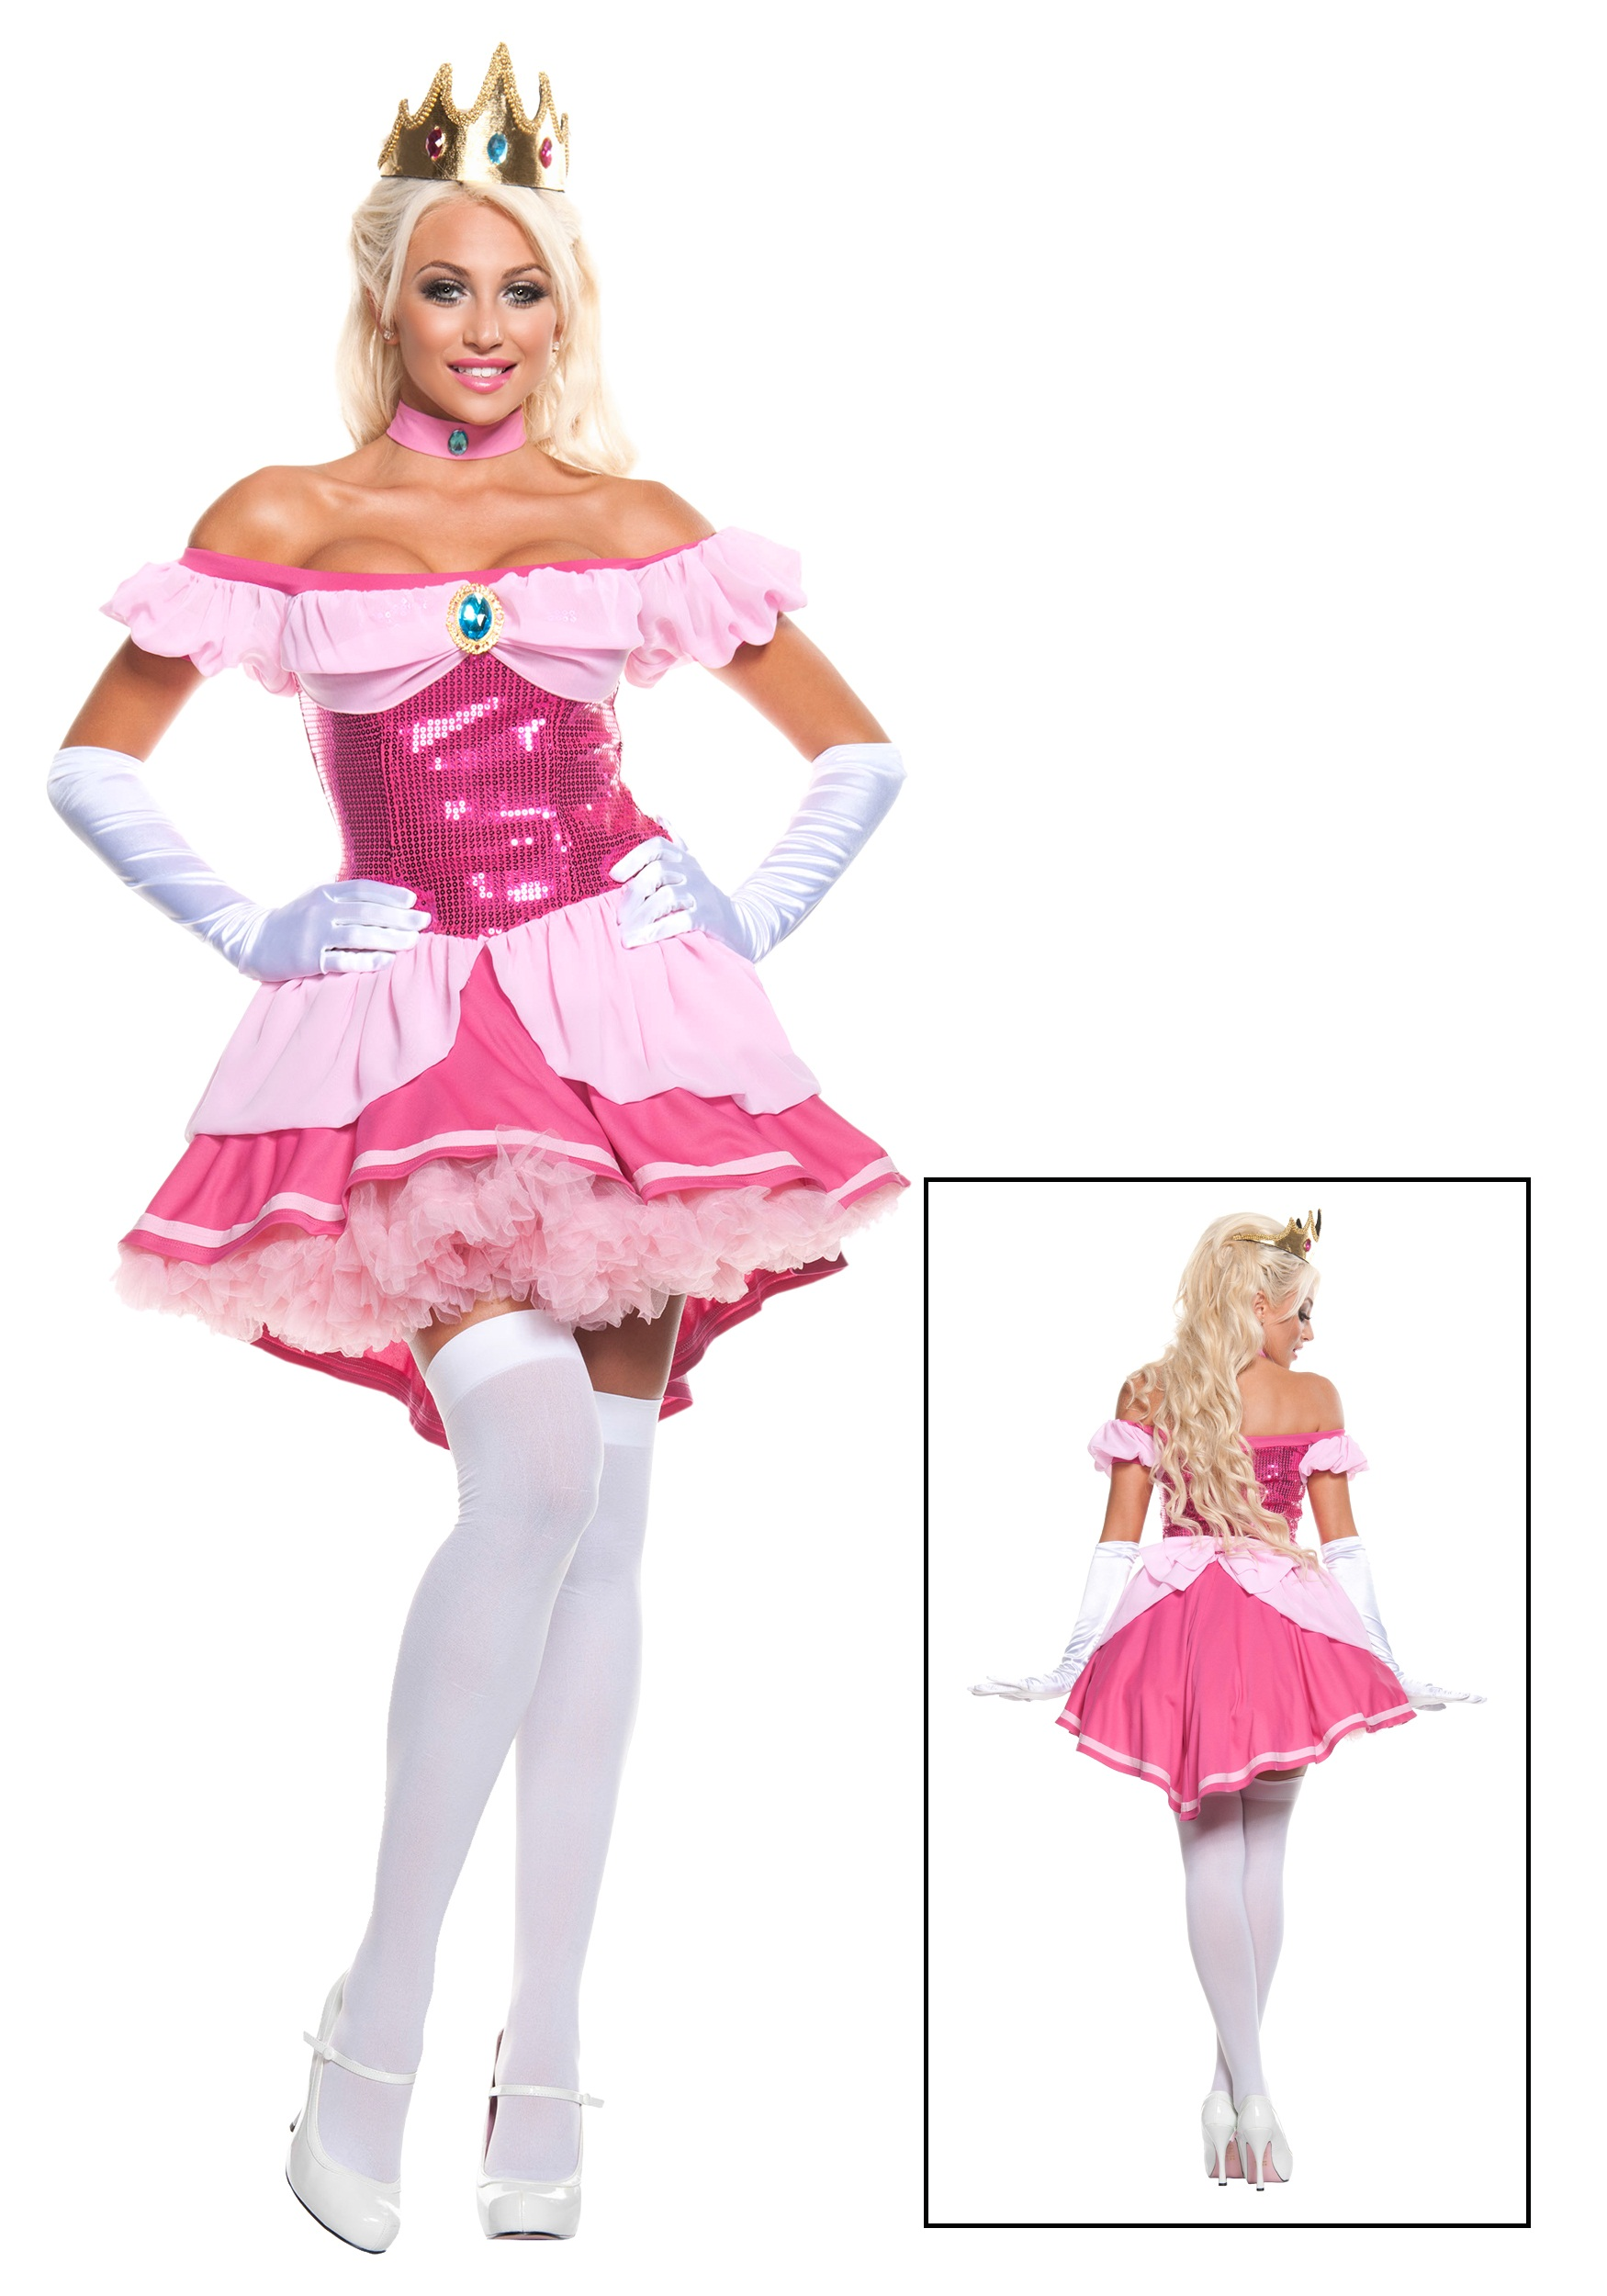 Womens Halloween Costumes | Womens Costume Ideas 2015 - Page 4 of 40